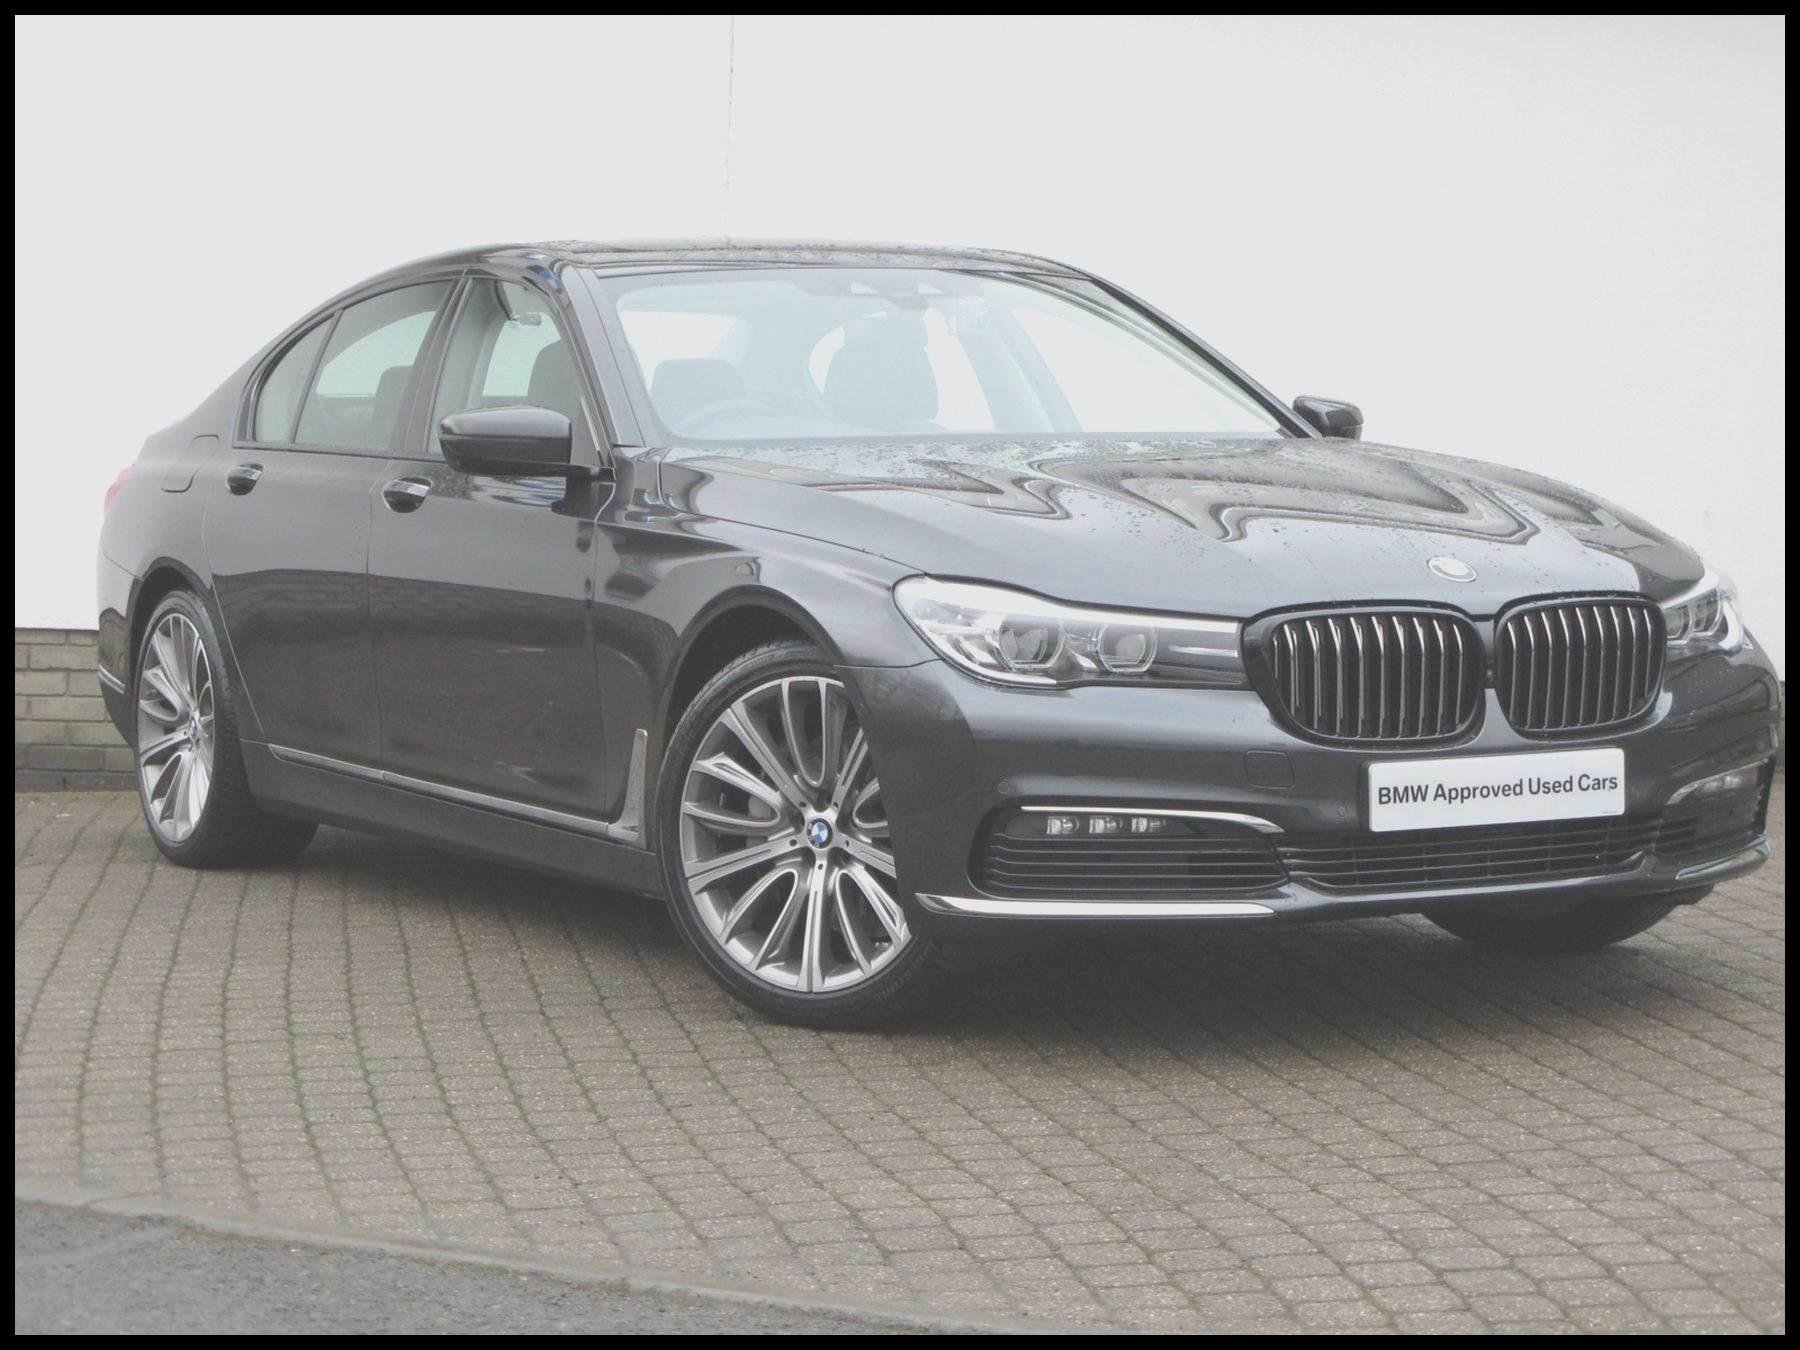 7 Series Bmw Lovely Latest Used 2017 Bmw 7 Series G11 740d Xdrive Hd Bmw 750d Wallpaper